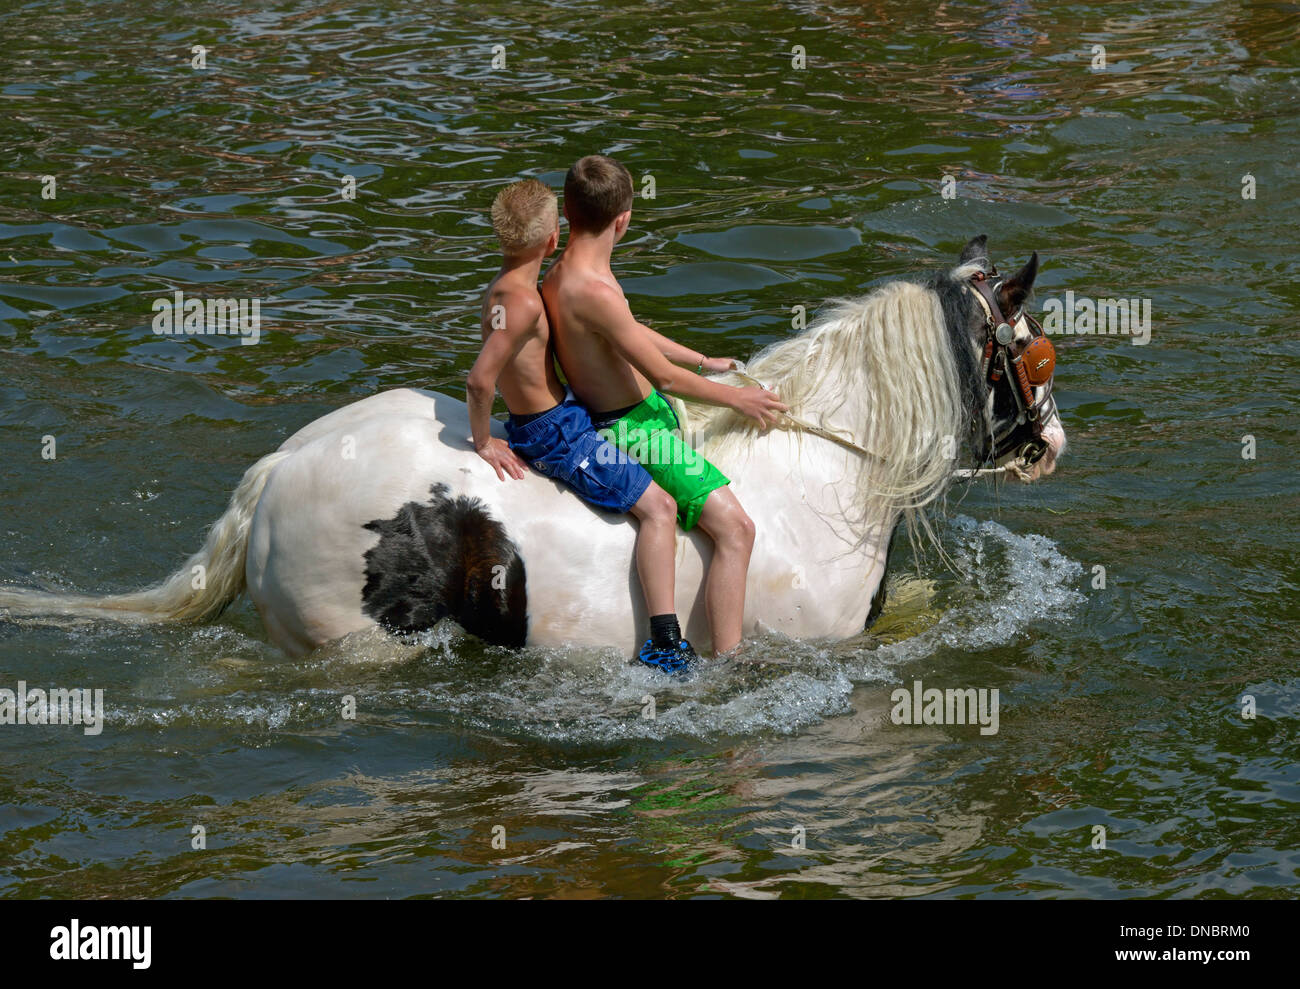 Gypsy traveller boys riding horse in River Eden. Appleby Horse Fair, Appleby-in-Westmorland, Cumbria, England, United Kingdom. - Stock Image